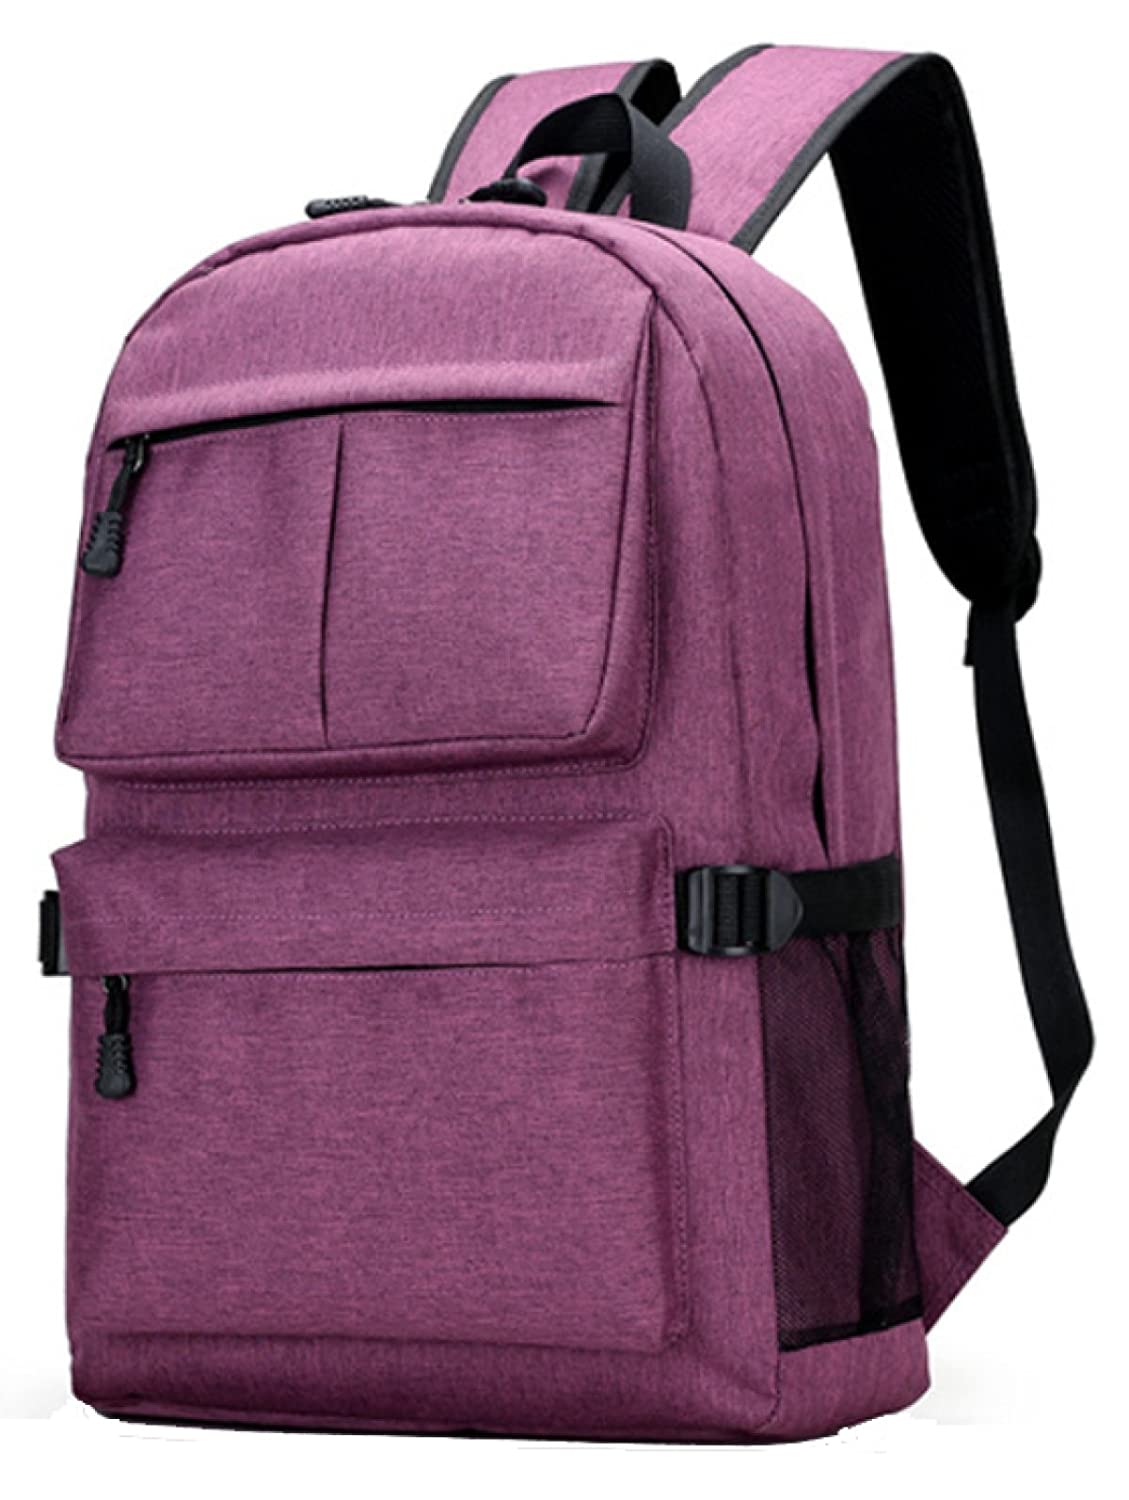 Purple LOUHH Multifunctional USB Charging Backpack Large Capacity Oxford Cloth School Bag Computer Bag,bluee